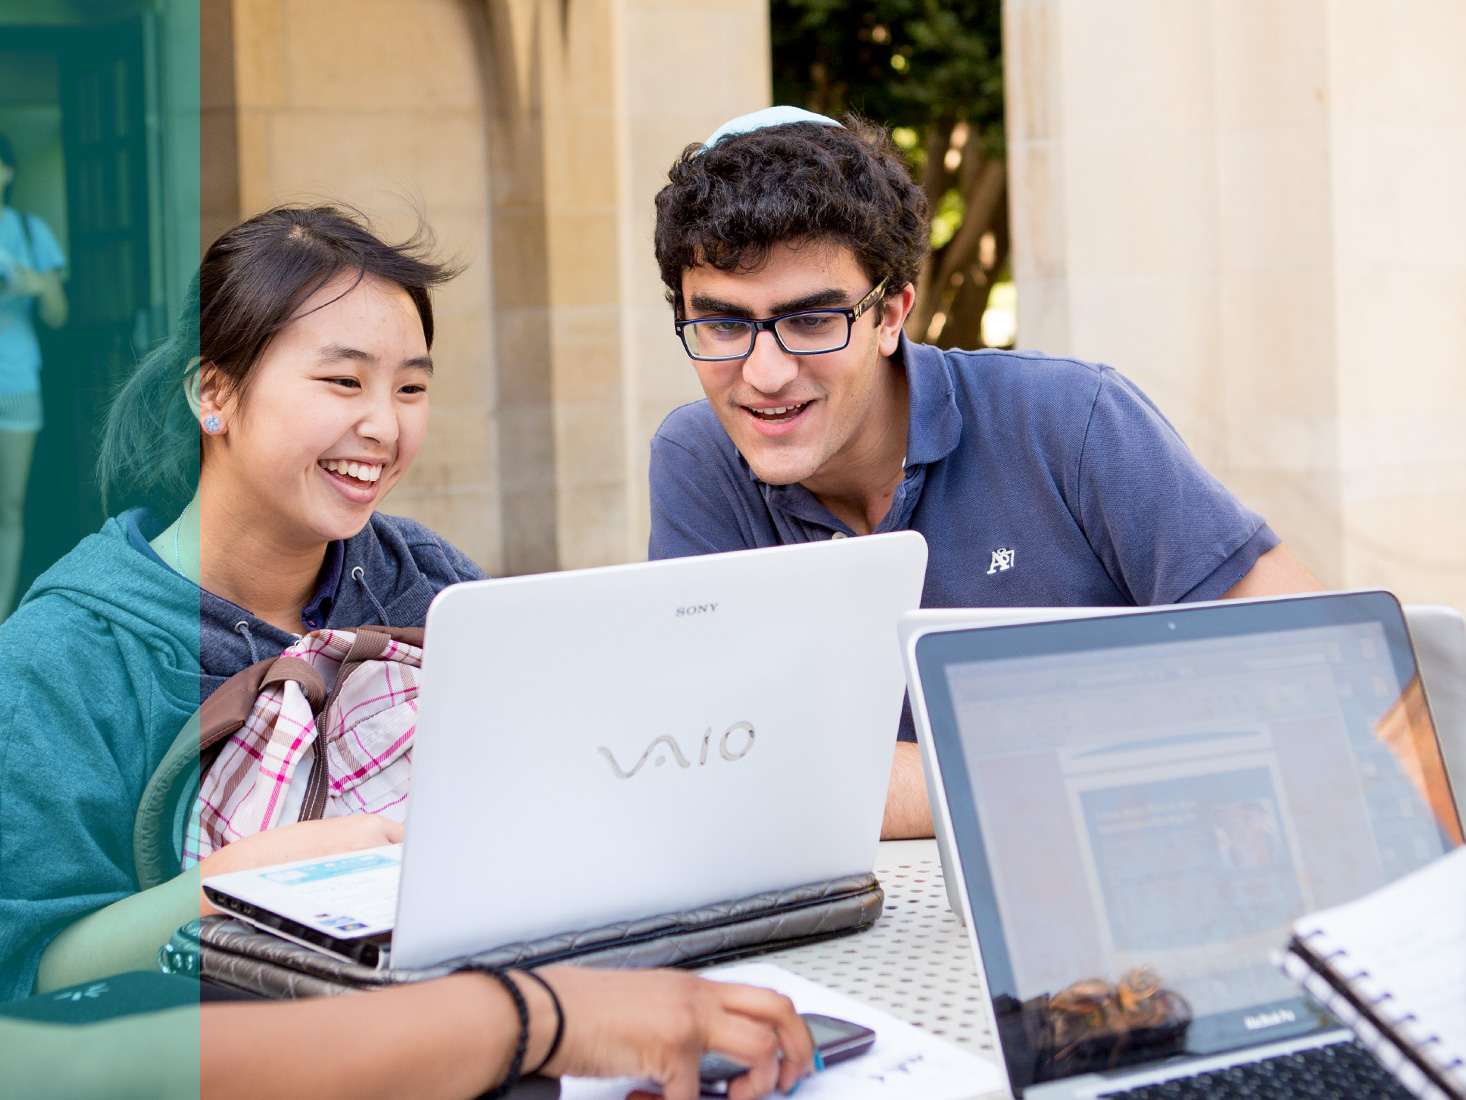 Several students study and have fun at an outdoor table.